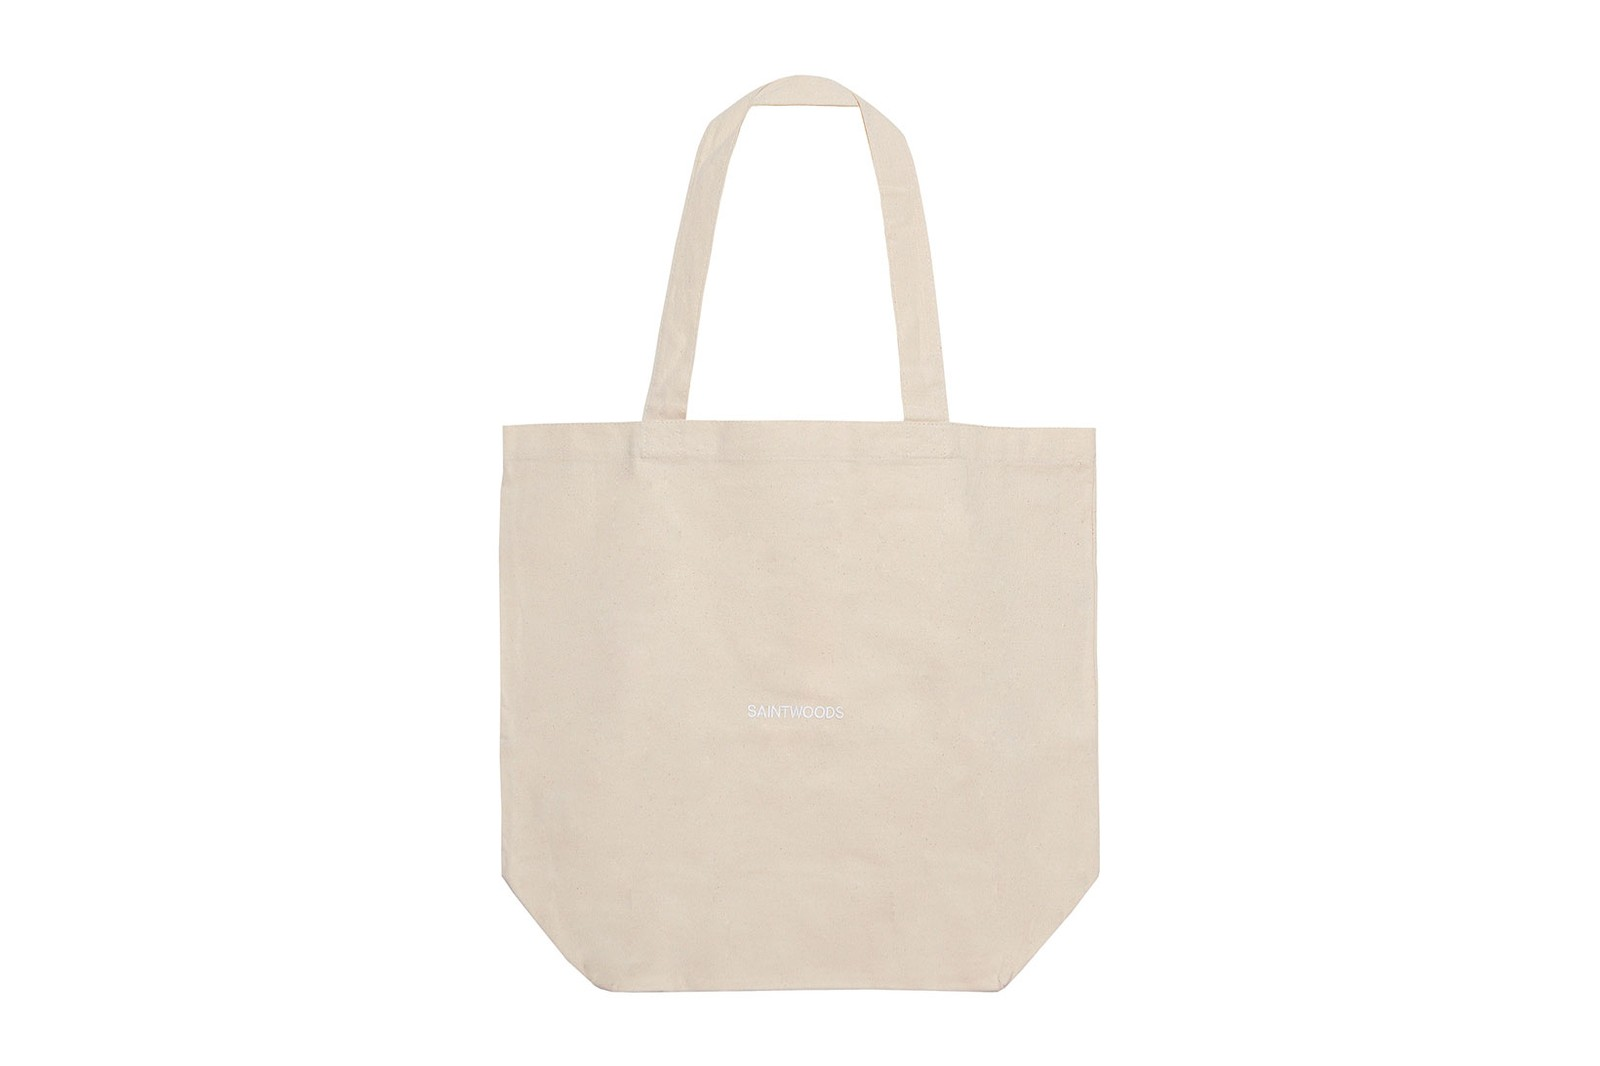 saintwoods sw basics collection hoodies t-shirts accessories bags mugs